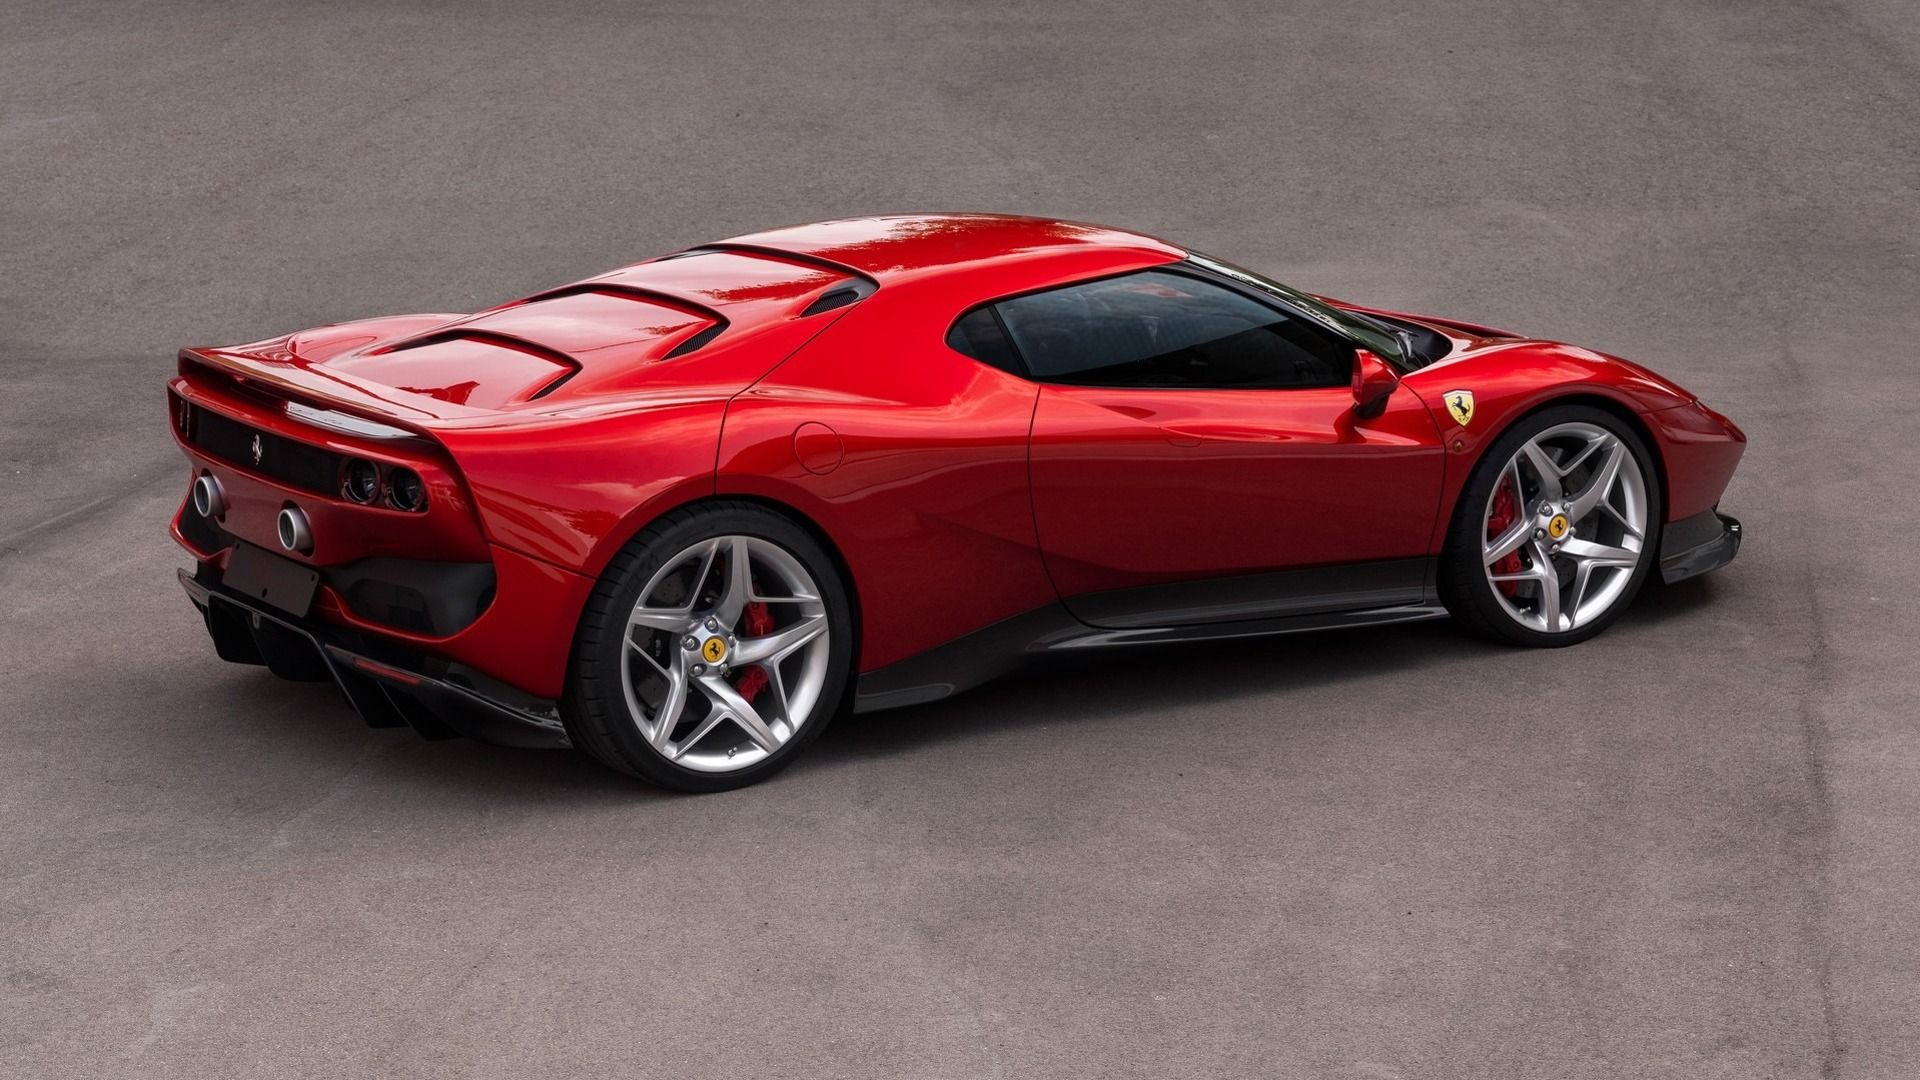 Ferrari SP38 revealed as latest 488 GTB-based one-off